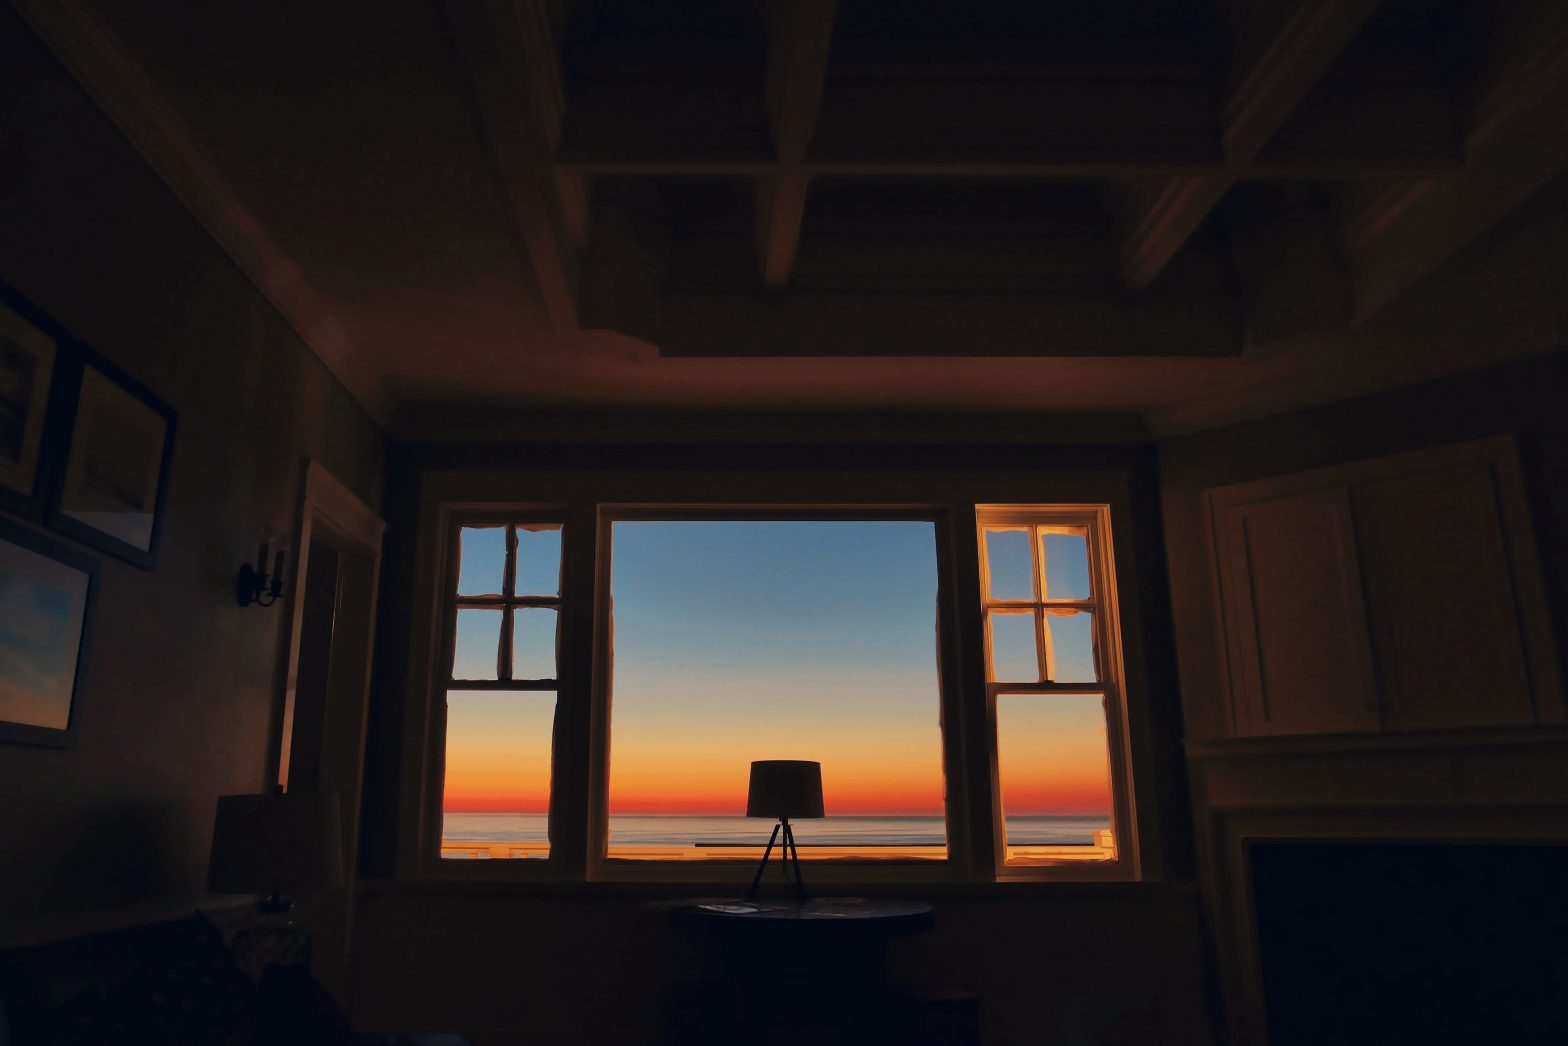 sunset in a window